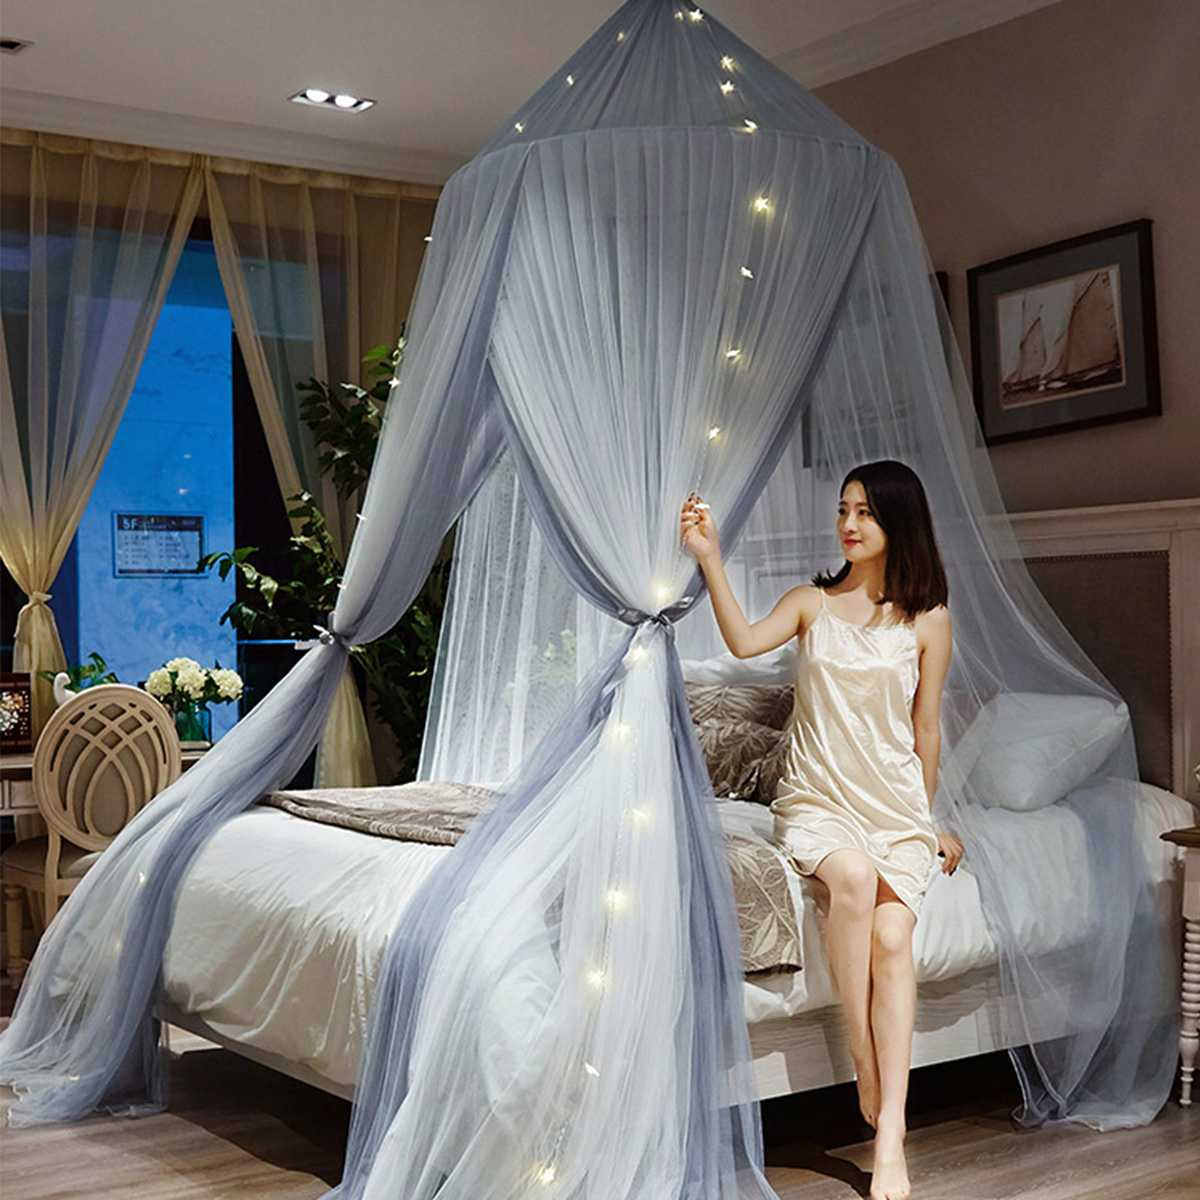 Fashion Princess Lace Mosquito Net Dome Insect Bed Canopy Netting Curtain Ceiling Dome Bedding Comfortable Sleep